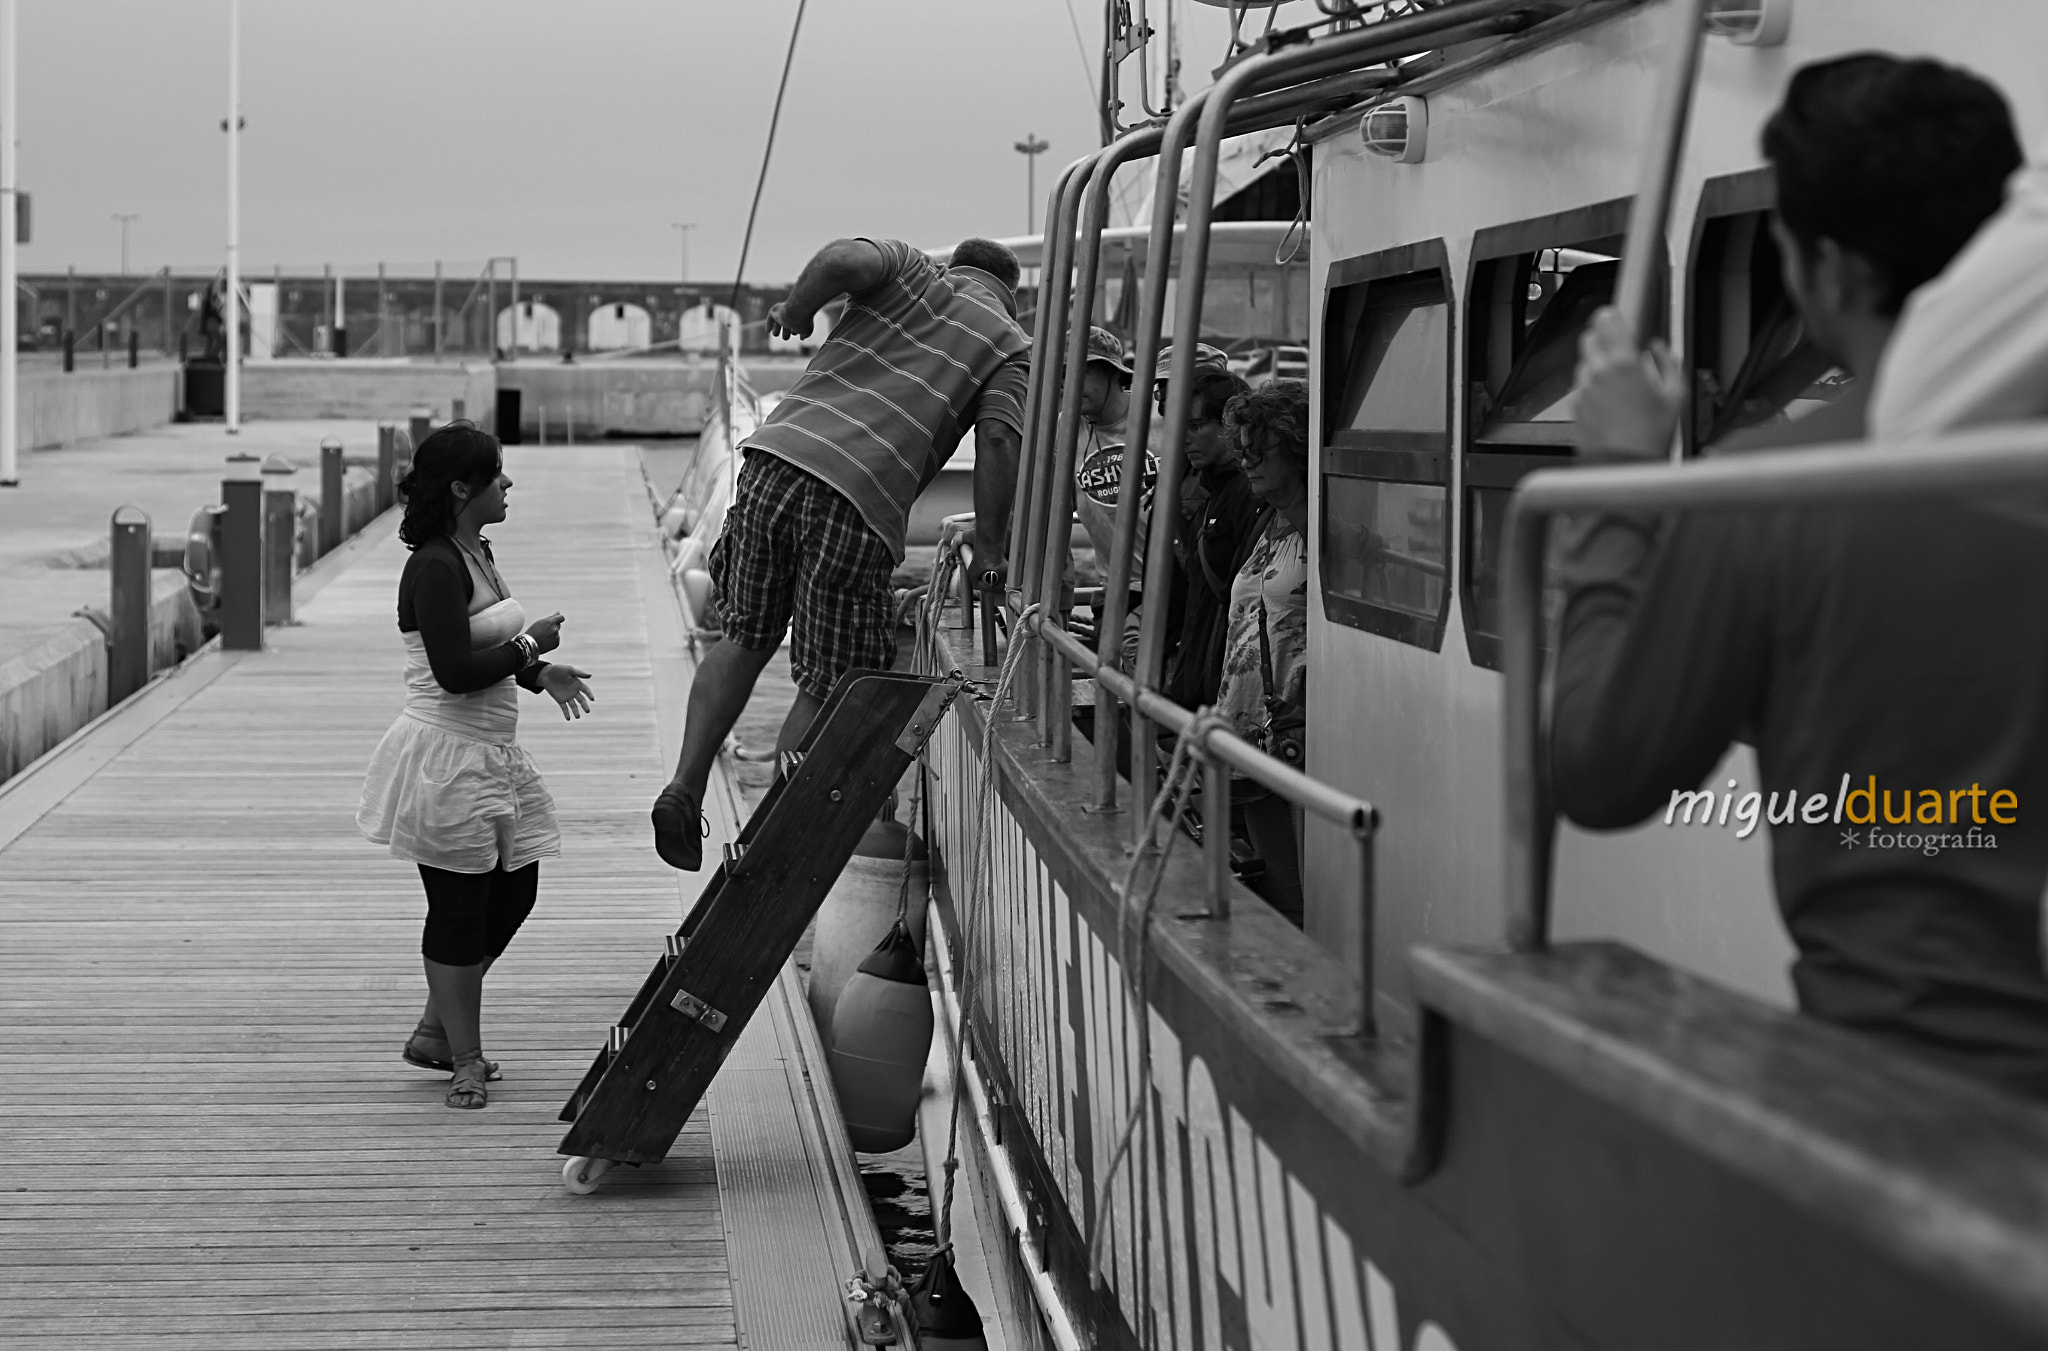 Photograph Friends on board by Miguel Duarte on 500px